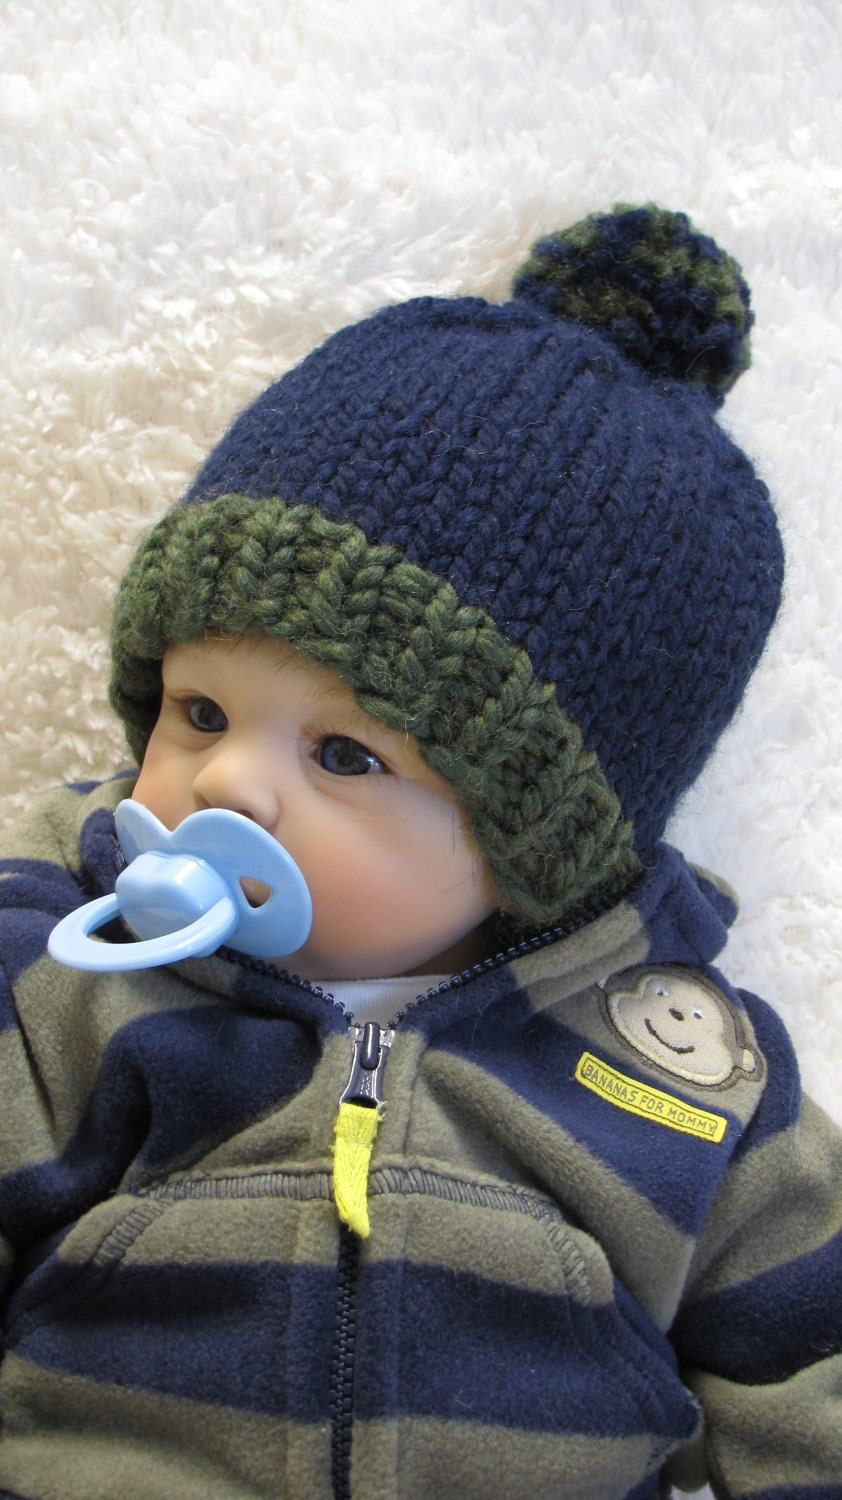 Knitting Pattern POM-POM Baby Hat PDF 3 Sizes by ezcareknits